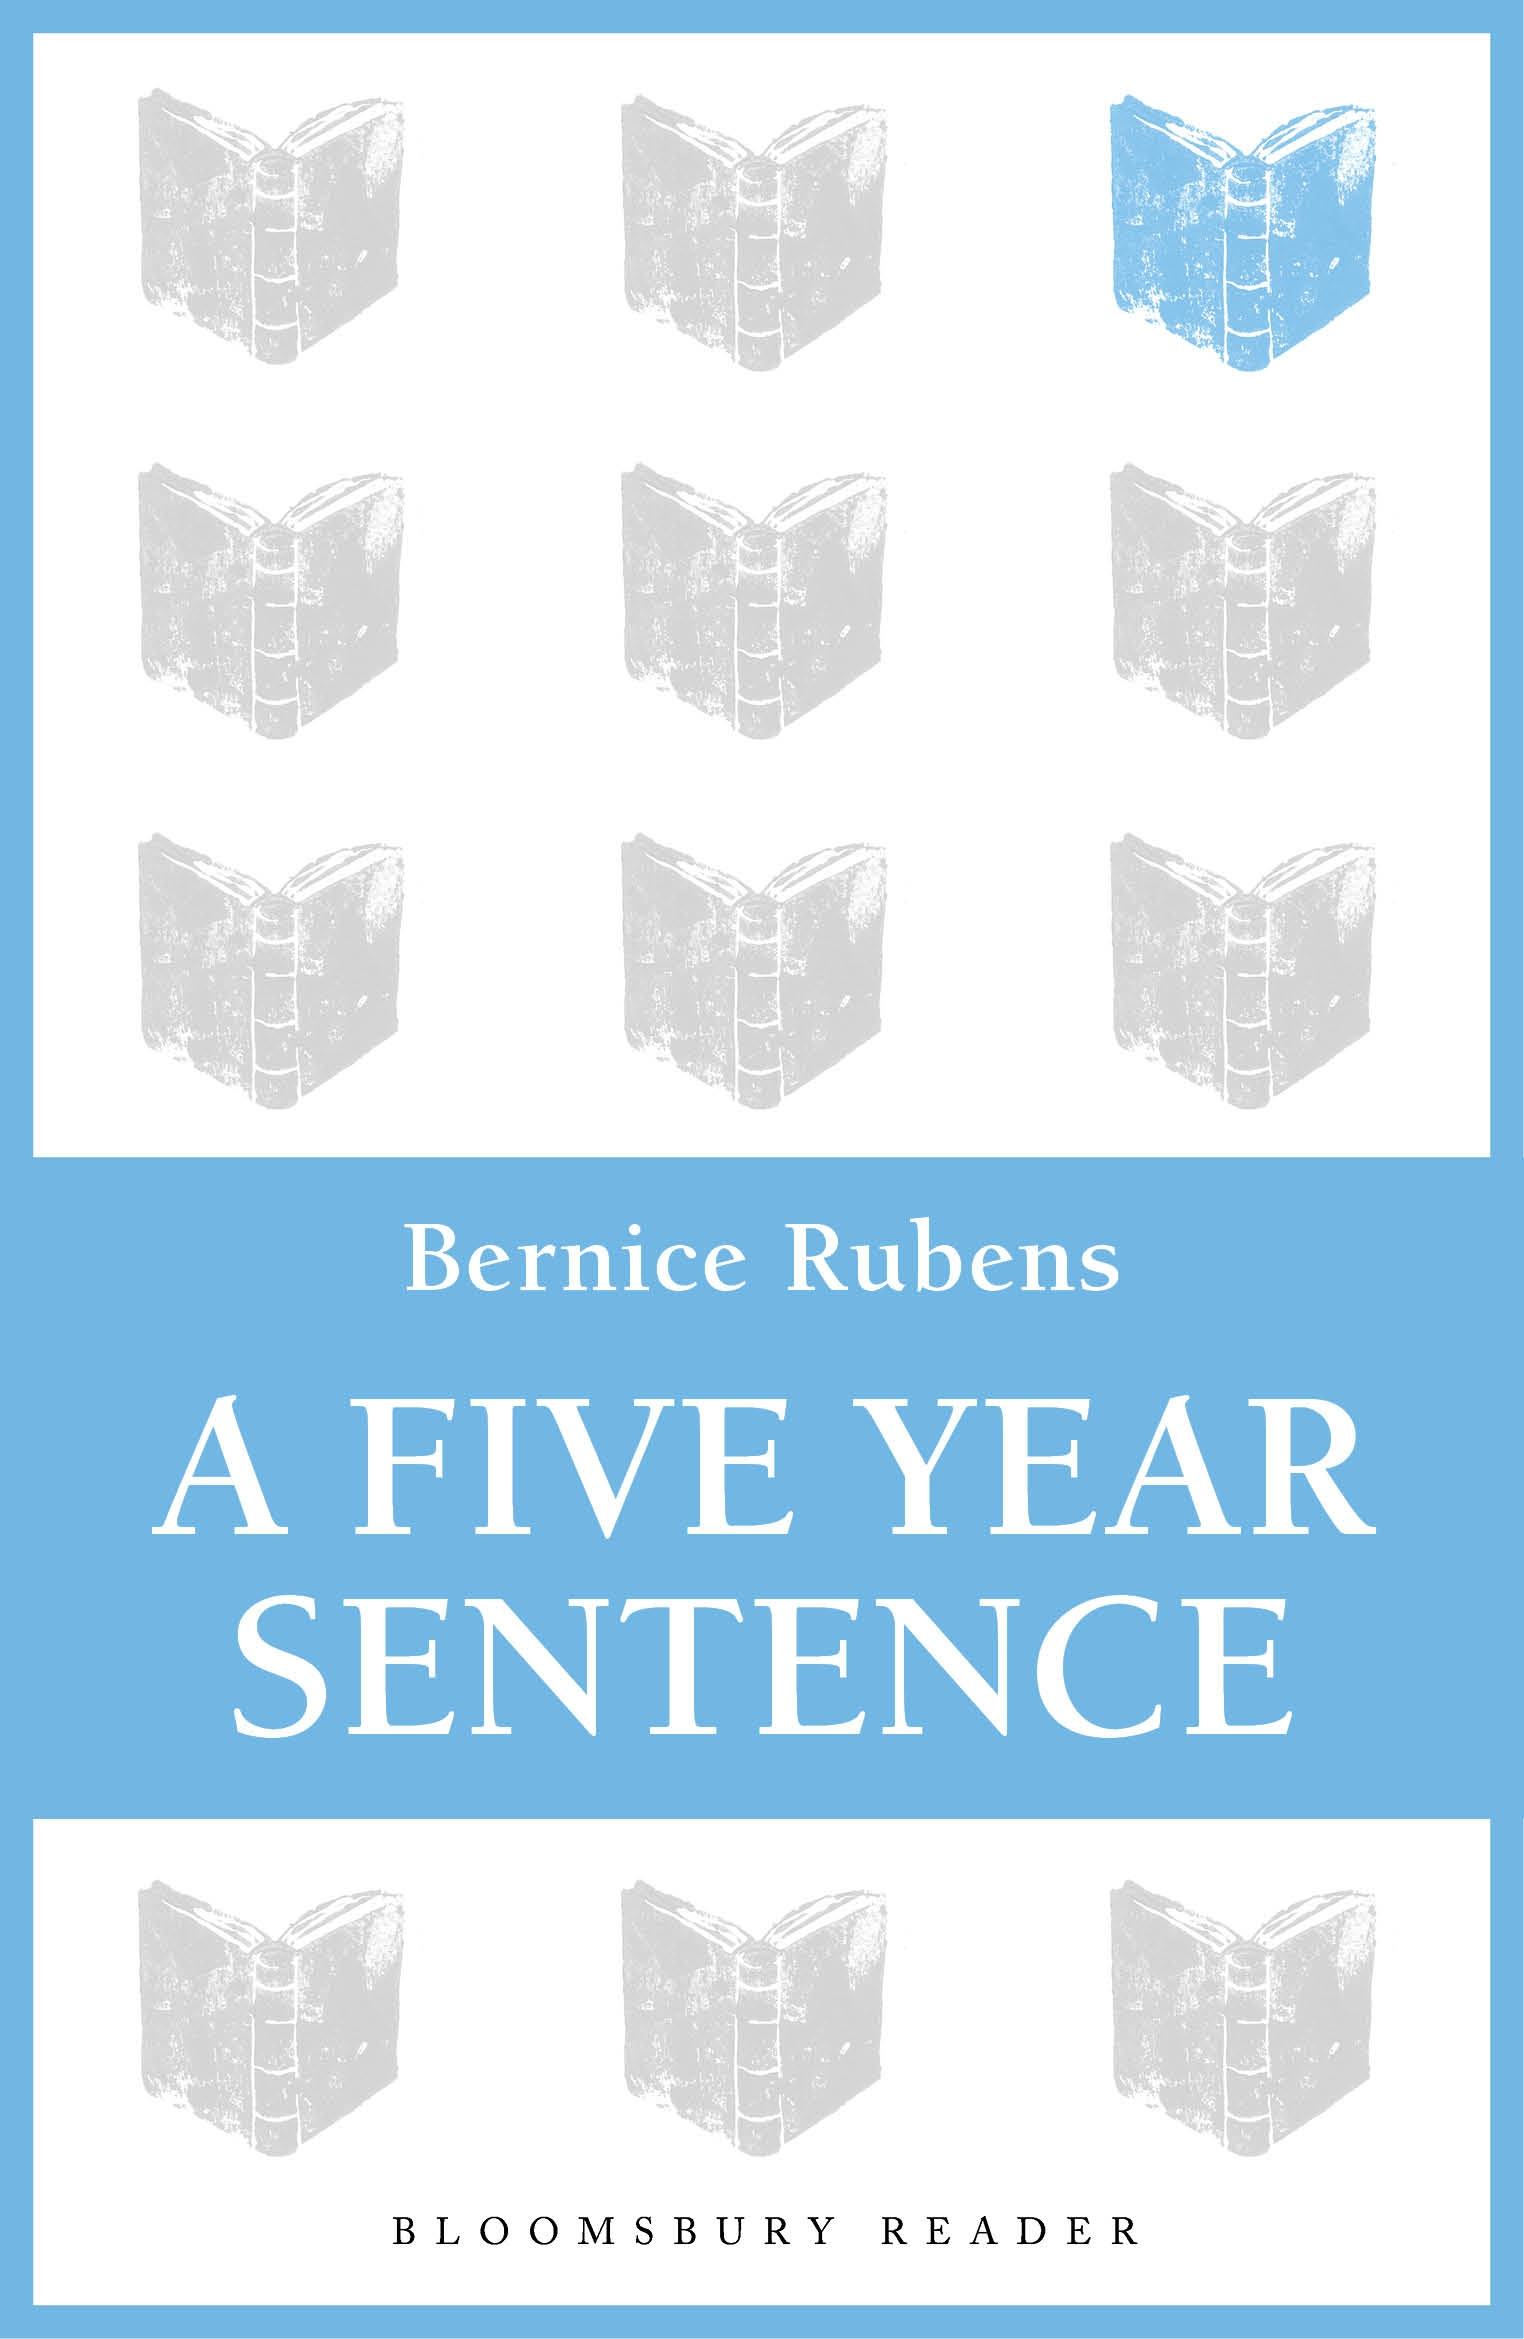 A Five Year Sentence